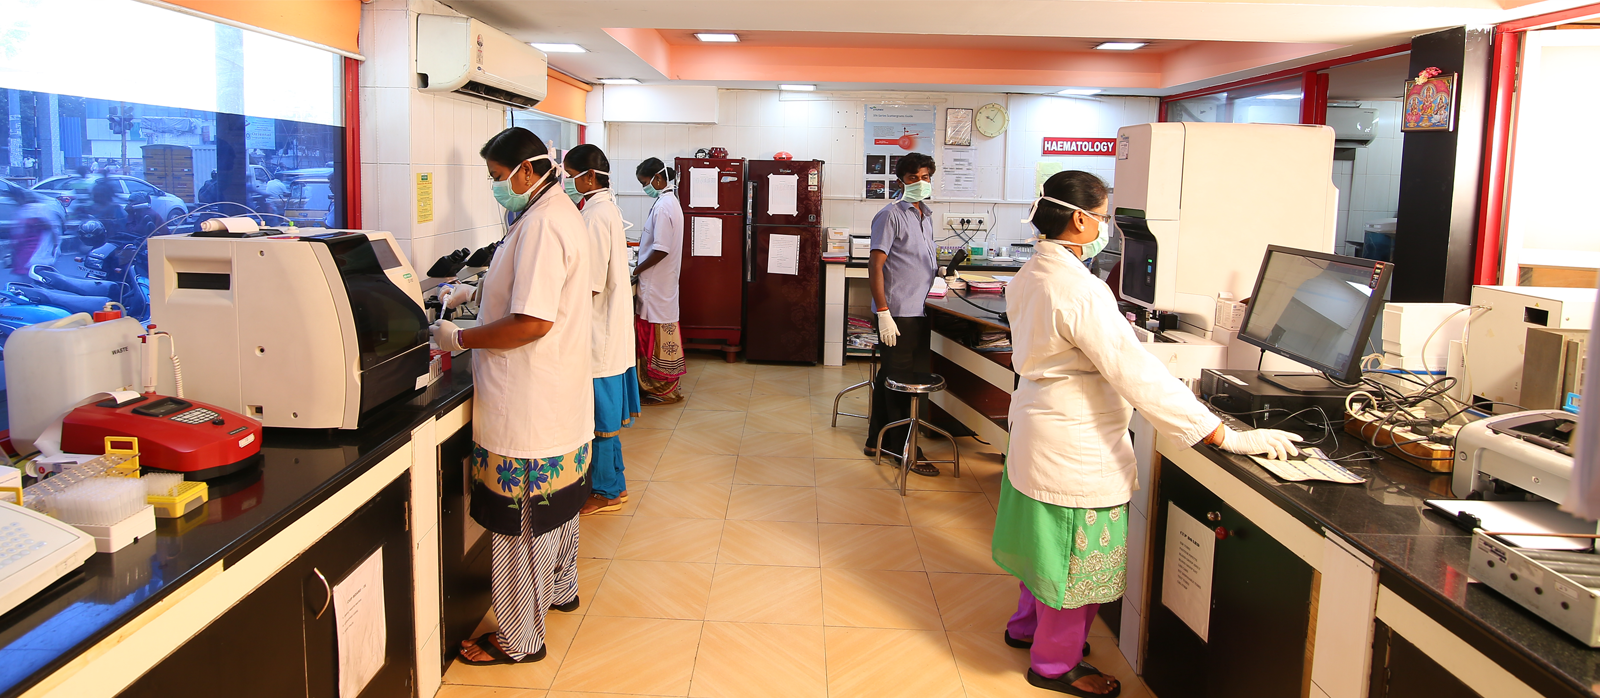 Gynecologist Hospital in Chennai